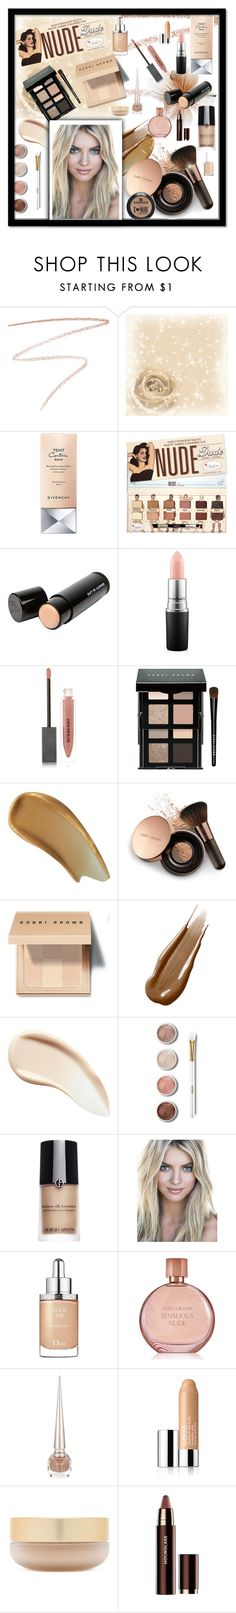 """""""Nude Beauty"""" by majezy ❤ liked on Polyvore featuring beauty, Charlotte Tilbury, Givenchy, Beauty Is Life, MAC Cosmetics, Burberry, Bobbi Brown Cosmetics, Prtty Peaushun, Nude by Nature and Hourglass Cosmetics"""